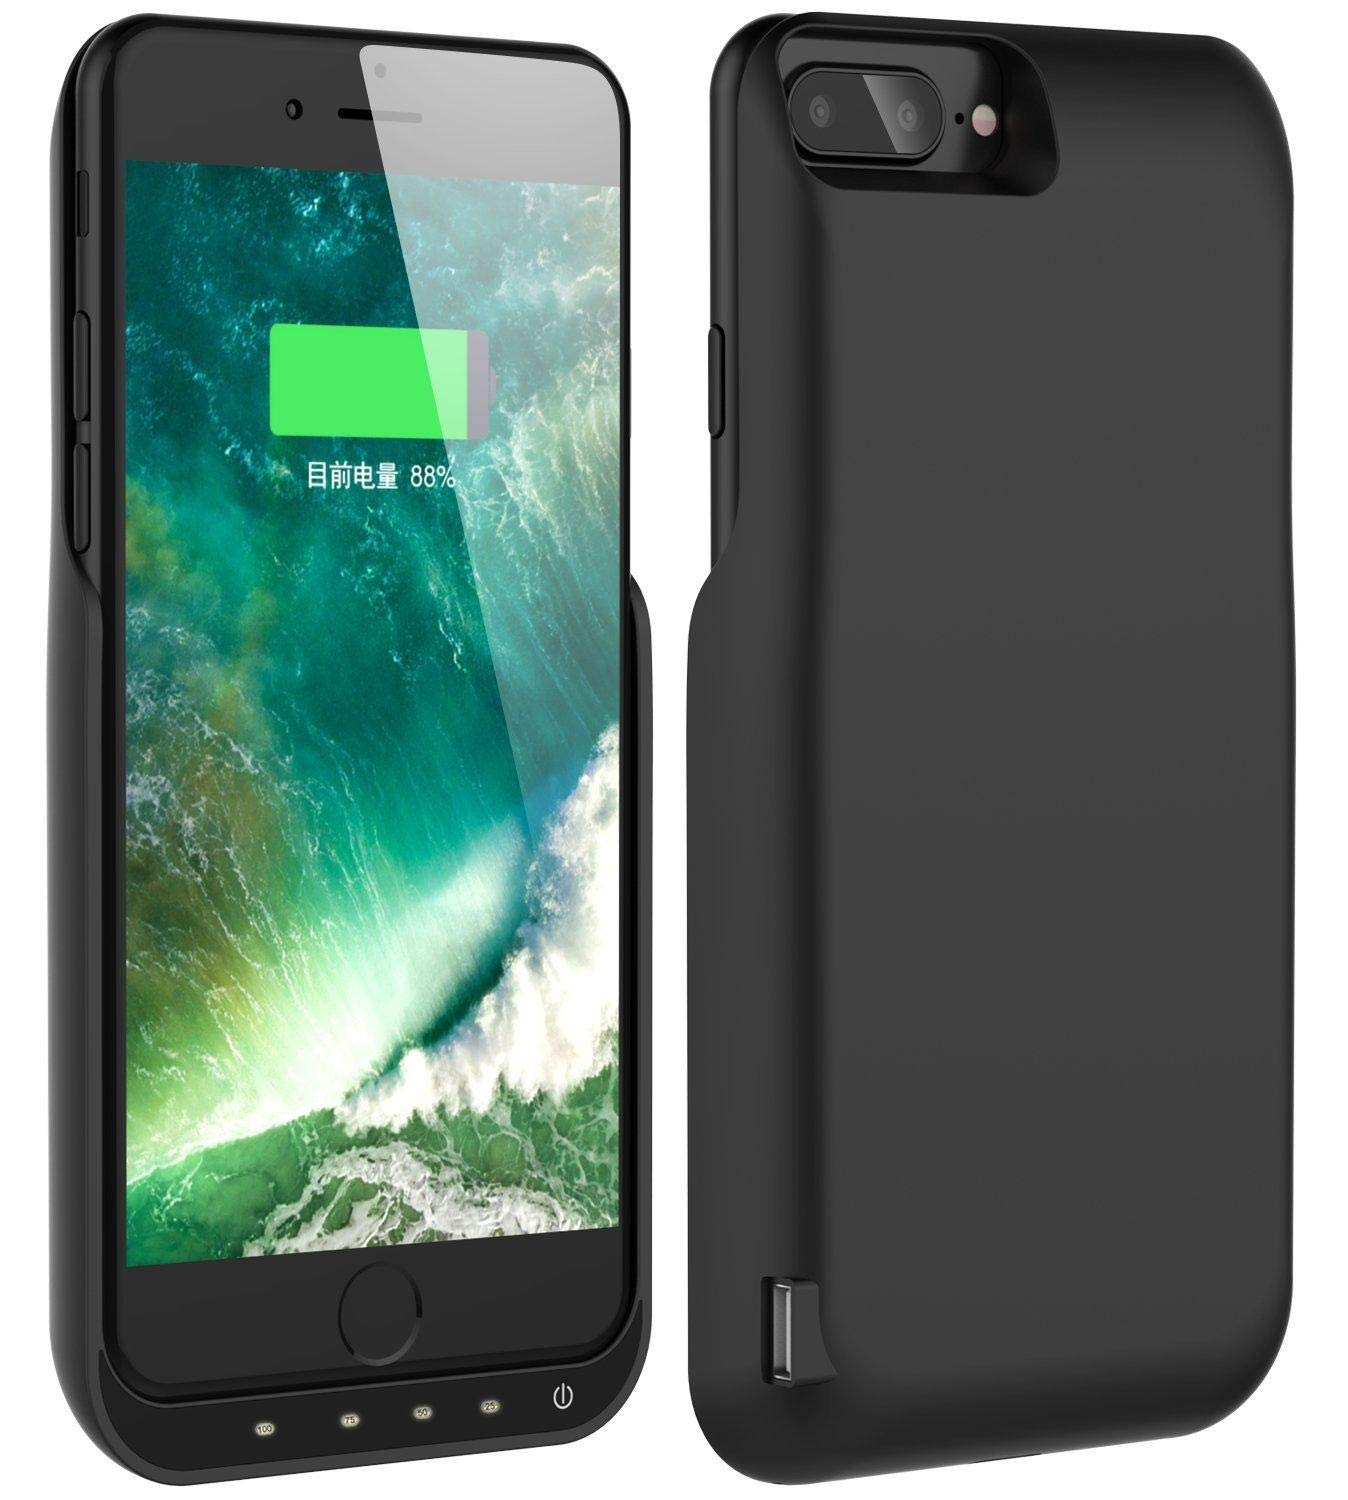 5.5 inch Rechargeable Extended Battery Battery Case for iPhone 7 Plus//8 Plus//6 Plus//6s Plus,5500mAh Portable Protective Charging Case Compatible with iPhone 7 Plus//8 Plus//6 Plus//6s Plus Black